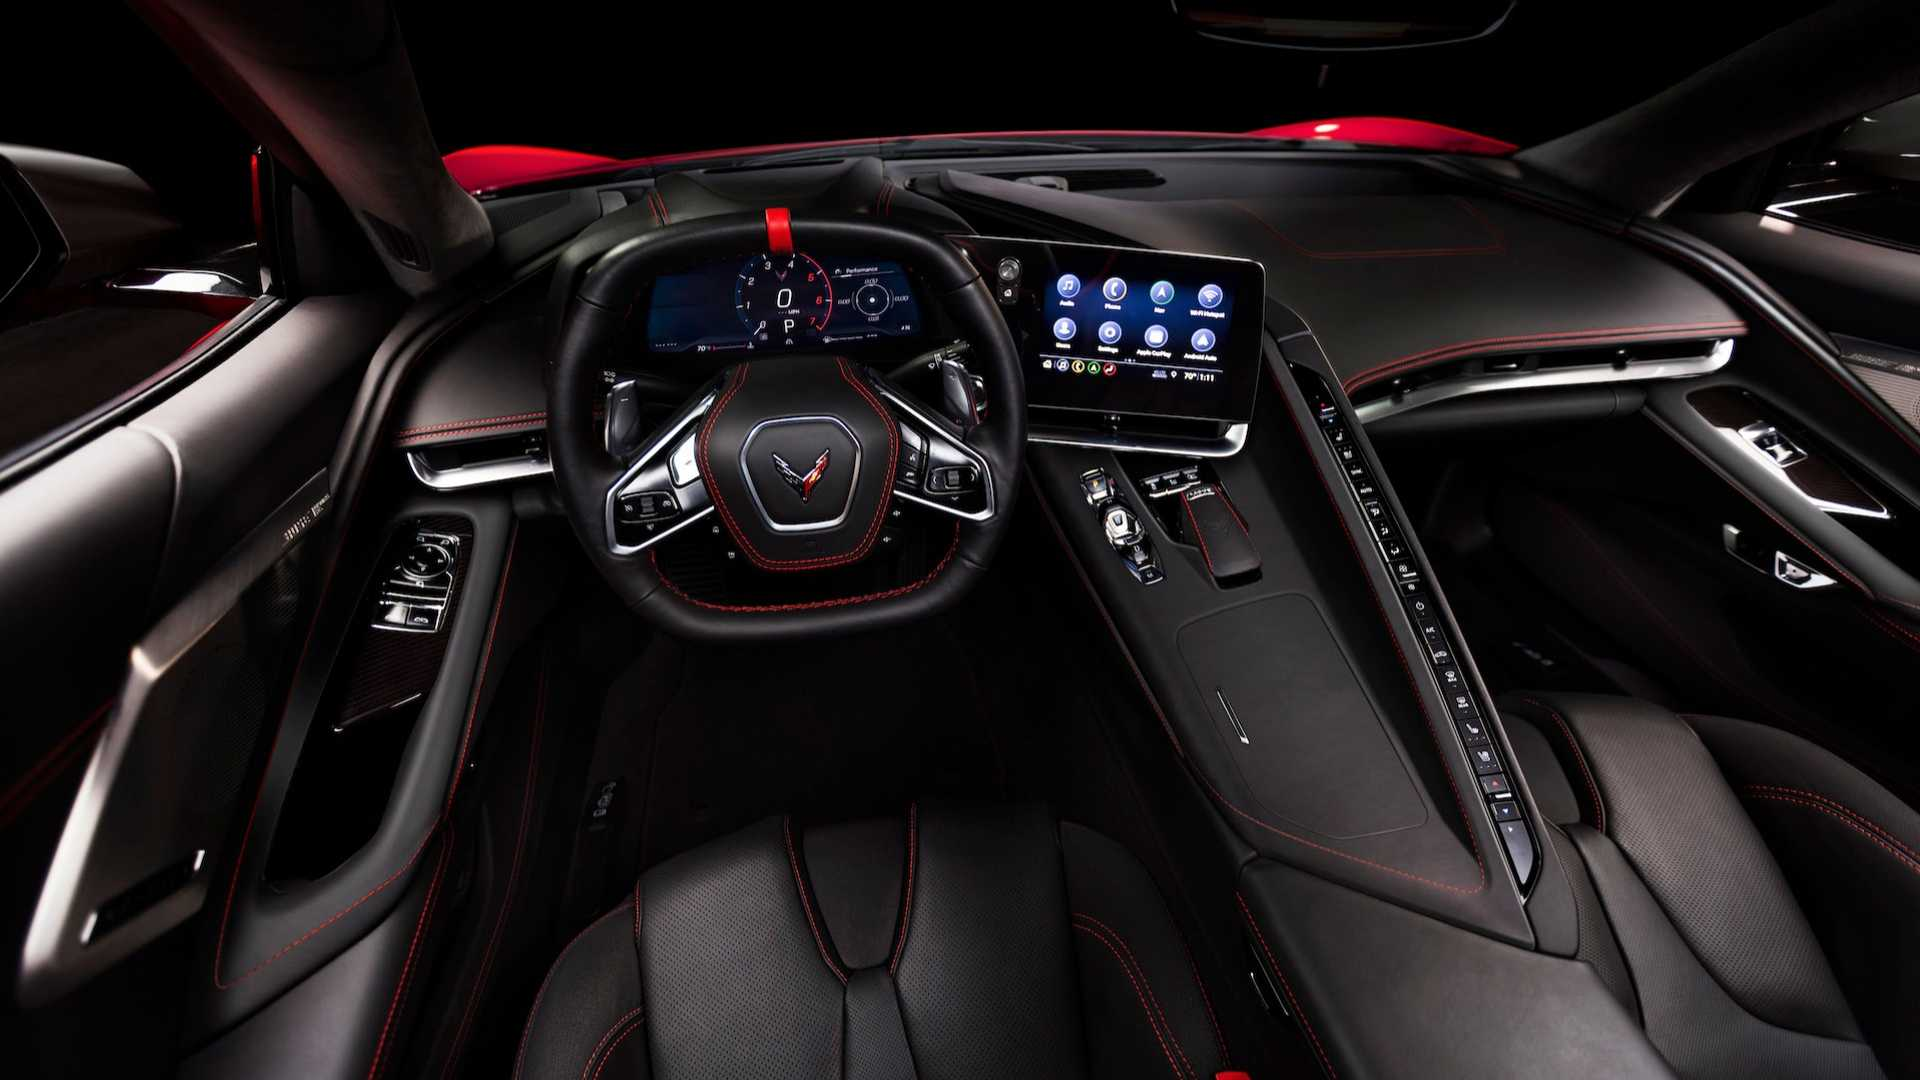 2020-chevrolet-corvette-stingray-interior